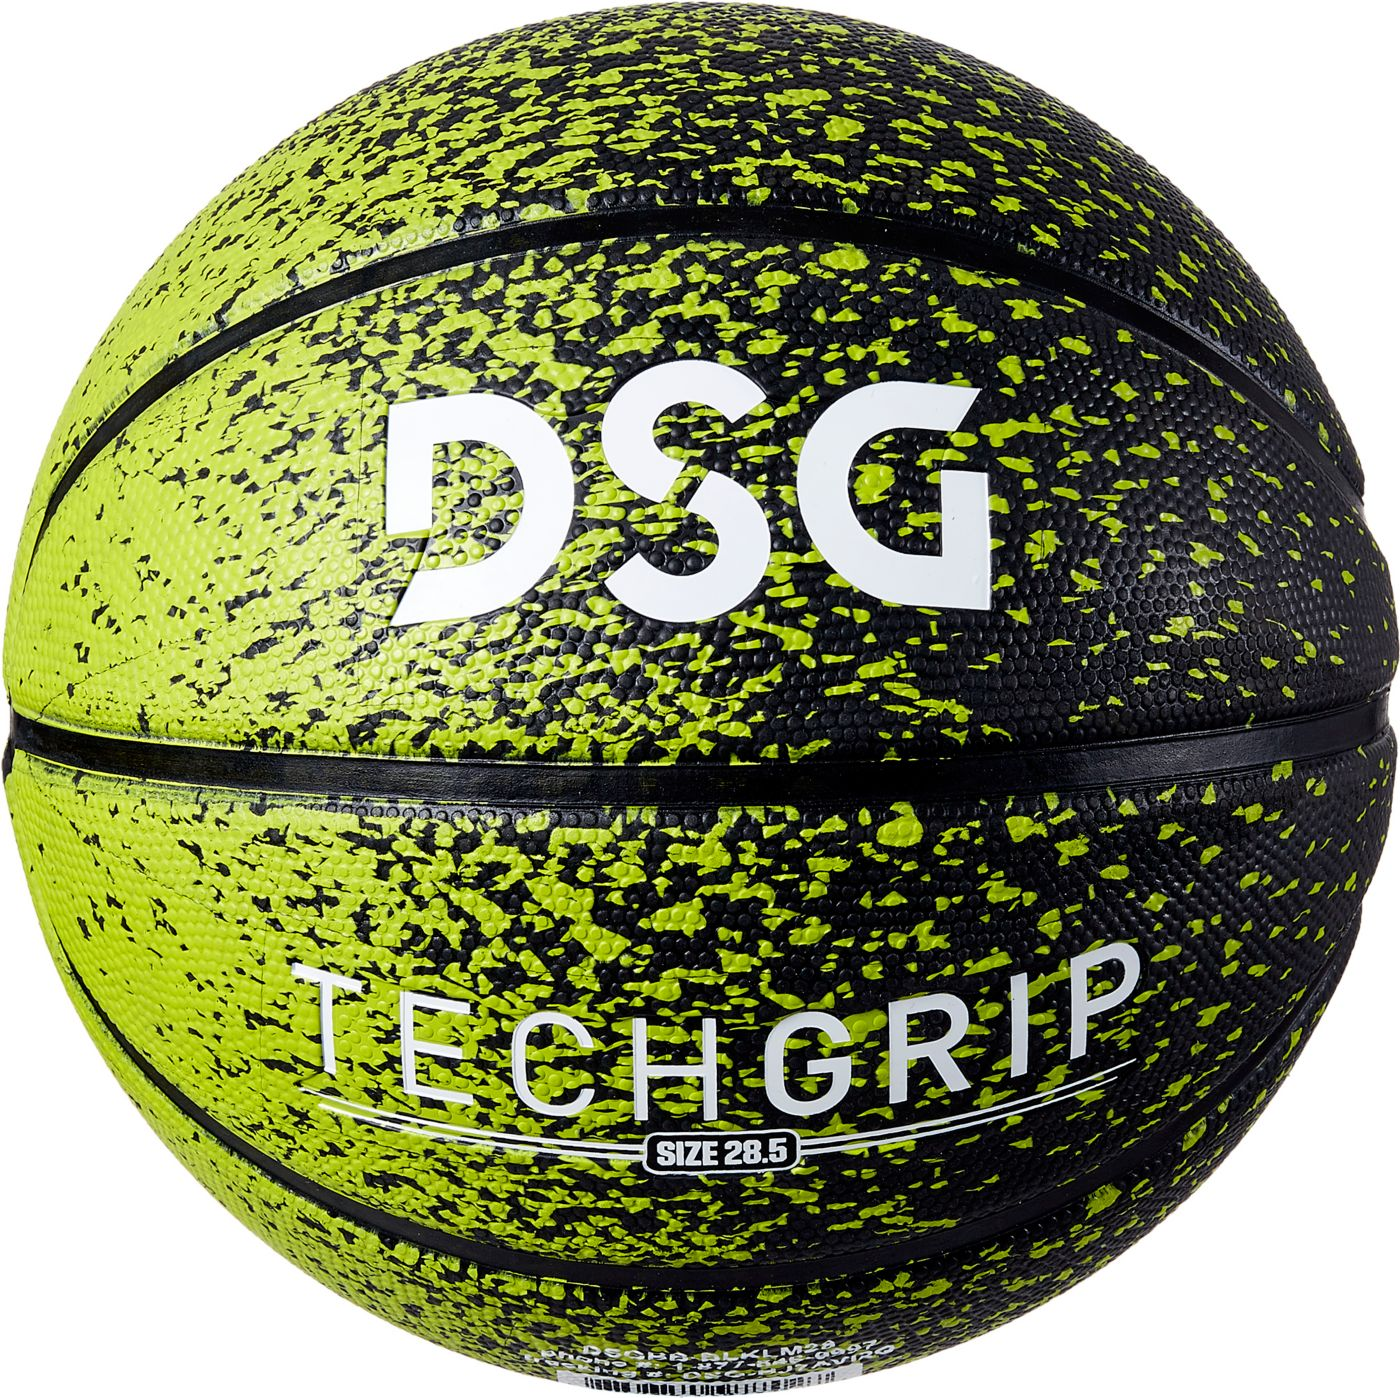 "DSG Techgrip Basketball (28.5"")"